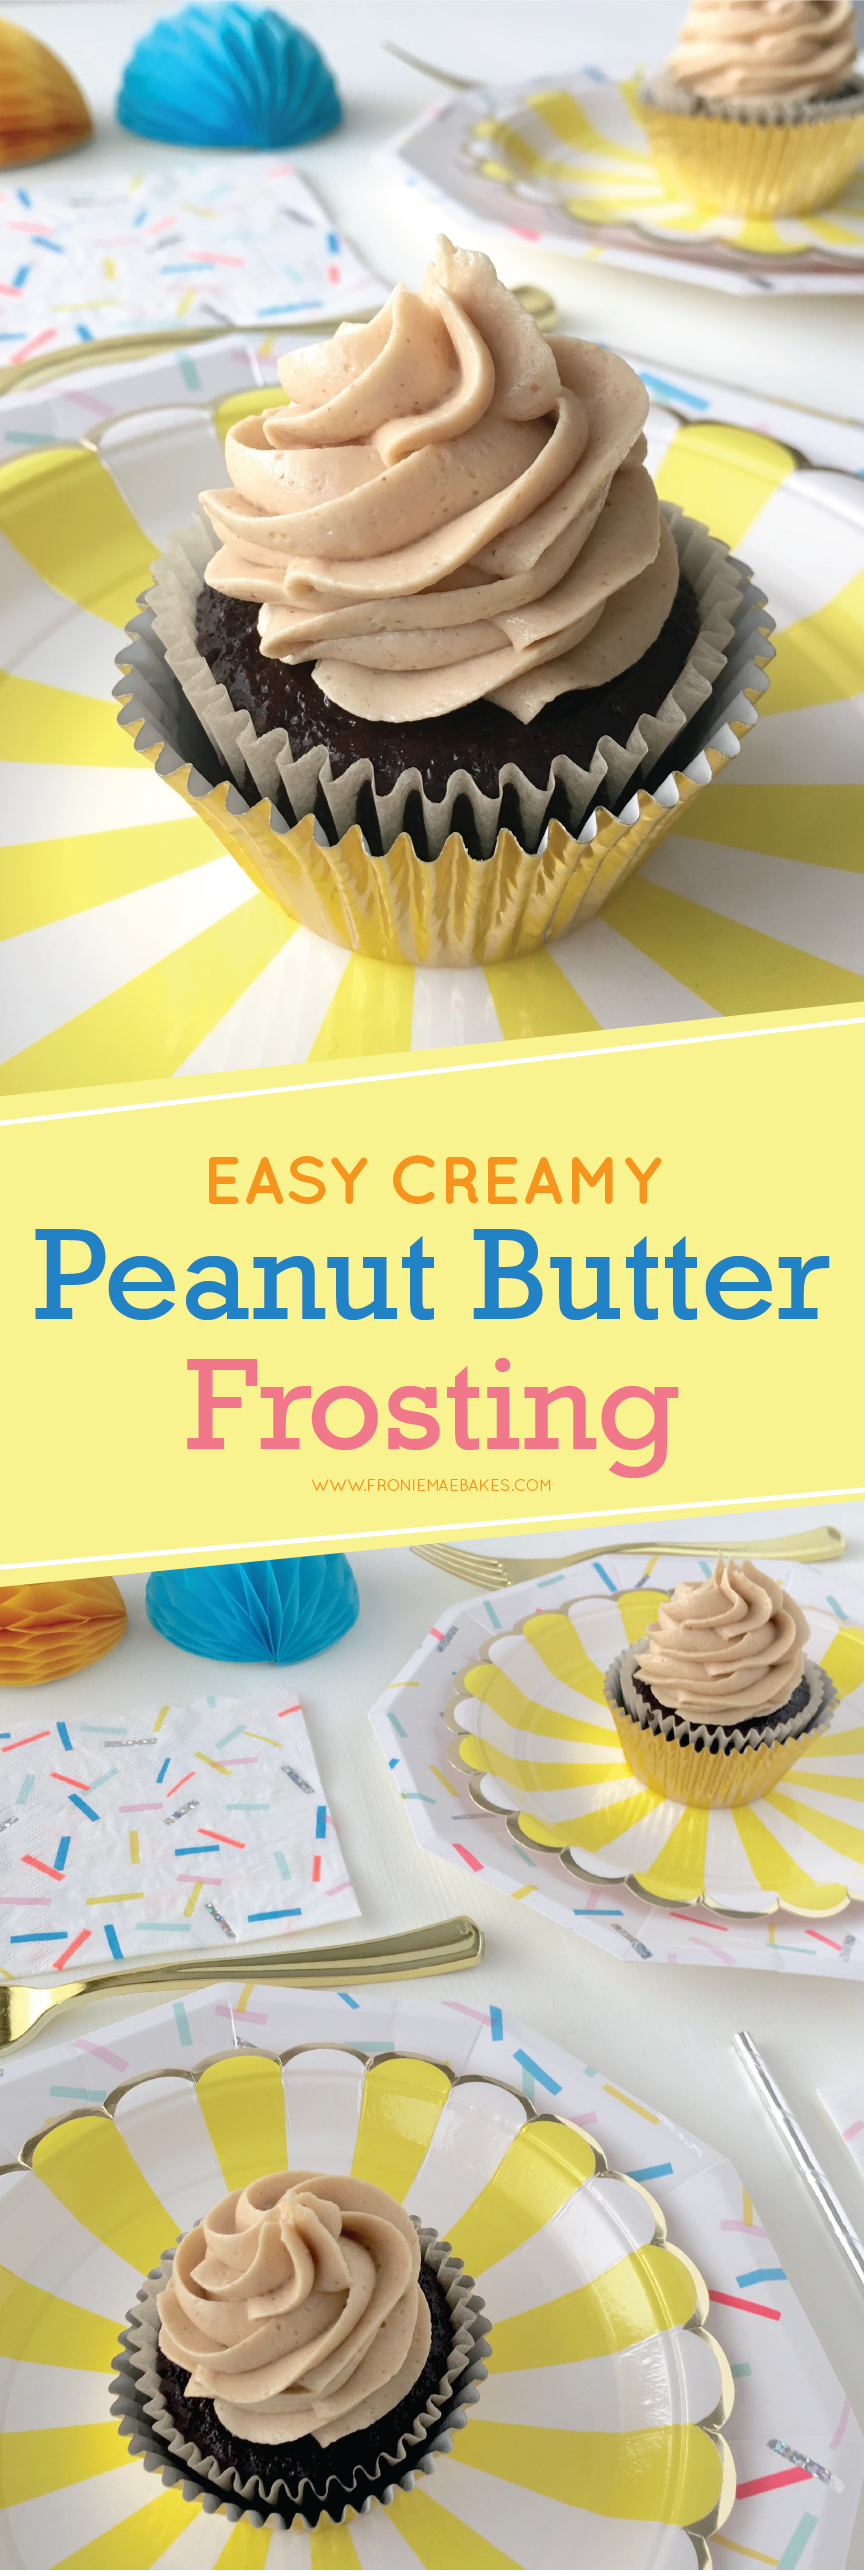 This Easy Creamy Peanut Butter Frosting Recipe is so delicious you will want to eat it by the spoonful! Recipe can be found at www.FronieMaeBakes.com